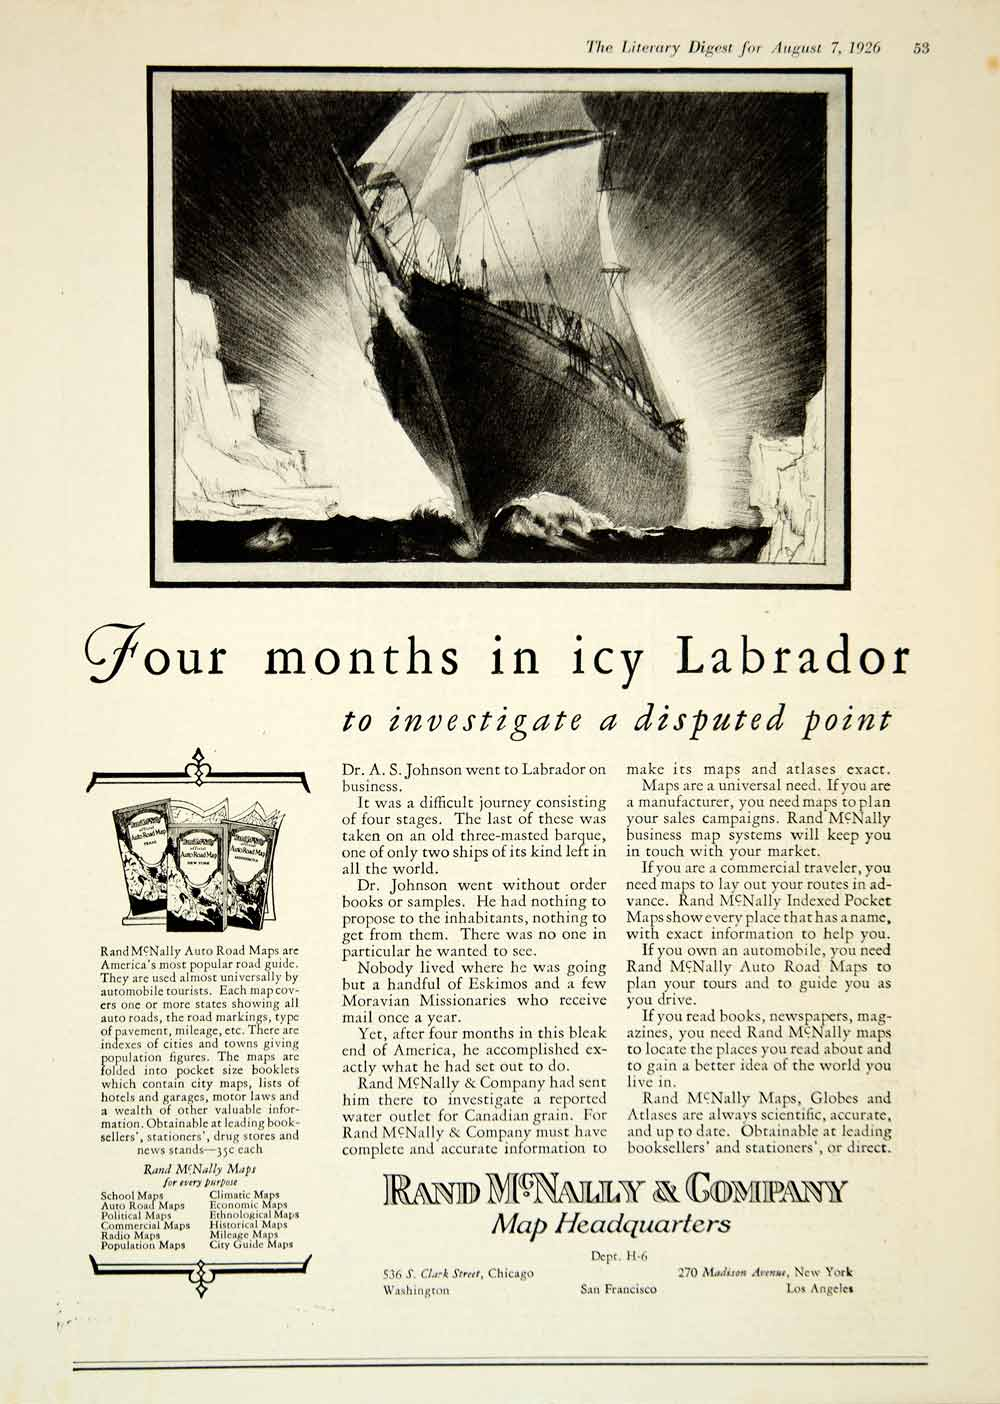 1926 Ad Rand McNally Maps Labrador Dr. A. S. Johnson Three-Masted Barque YLD4